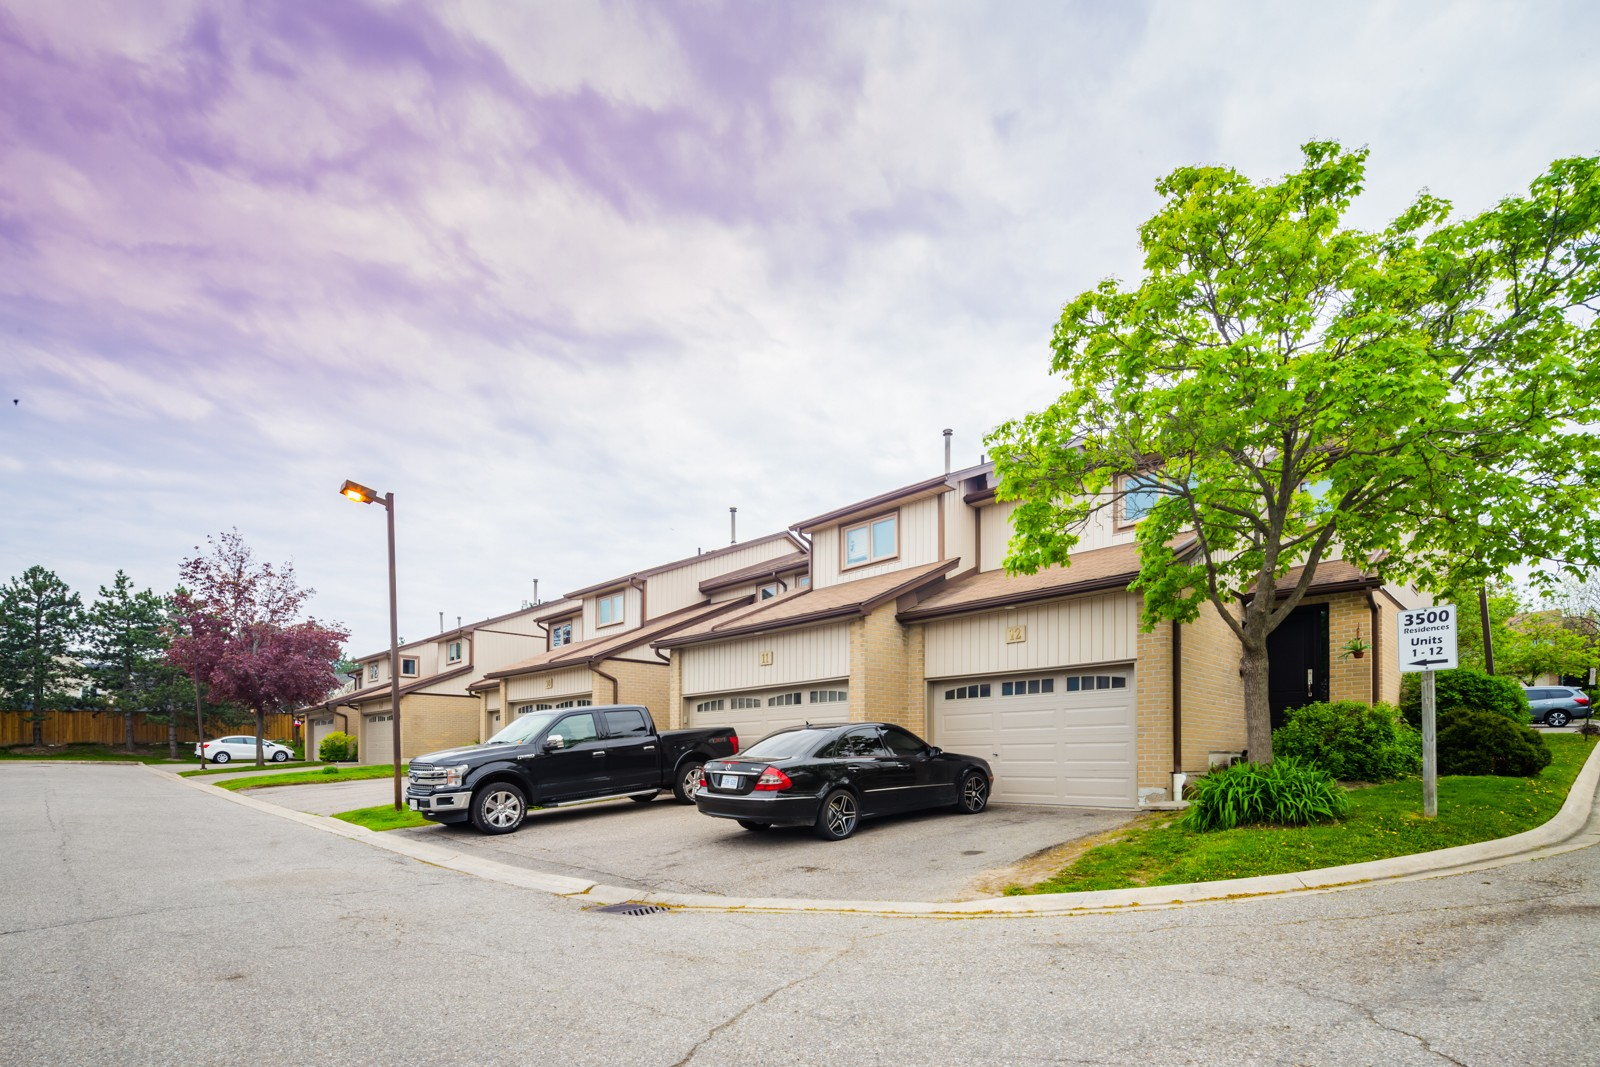 3500 South Millway Townhouses at 3500 South Millway, Mississauga 1